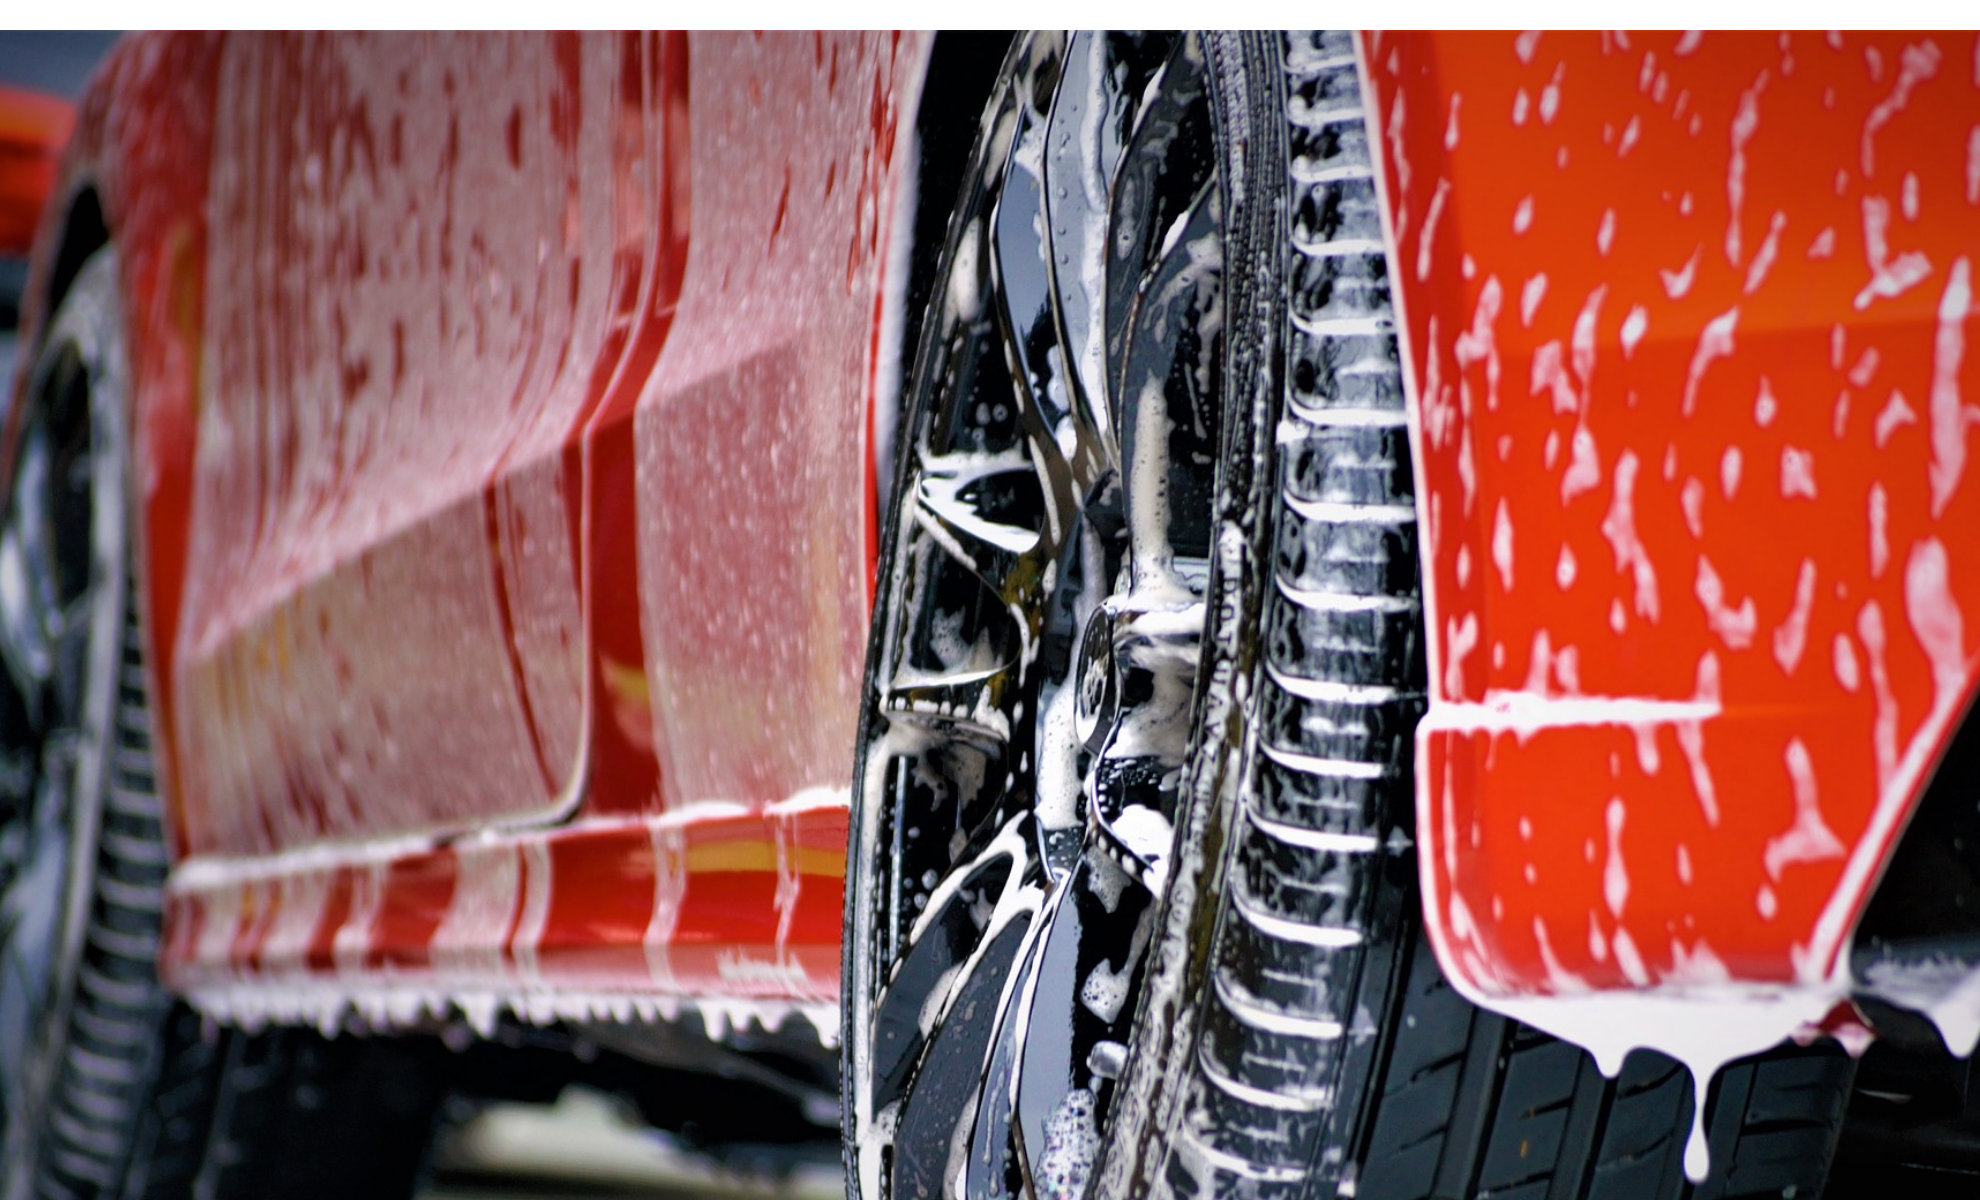 Here are some car wash tips for washing and drying your vehicle.